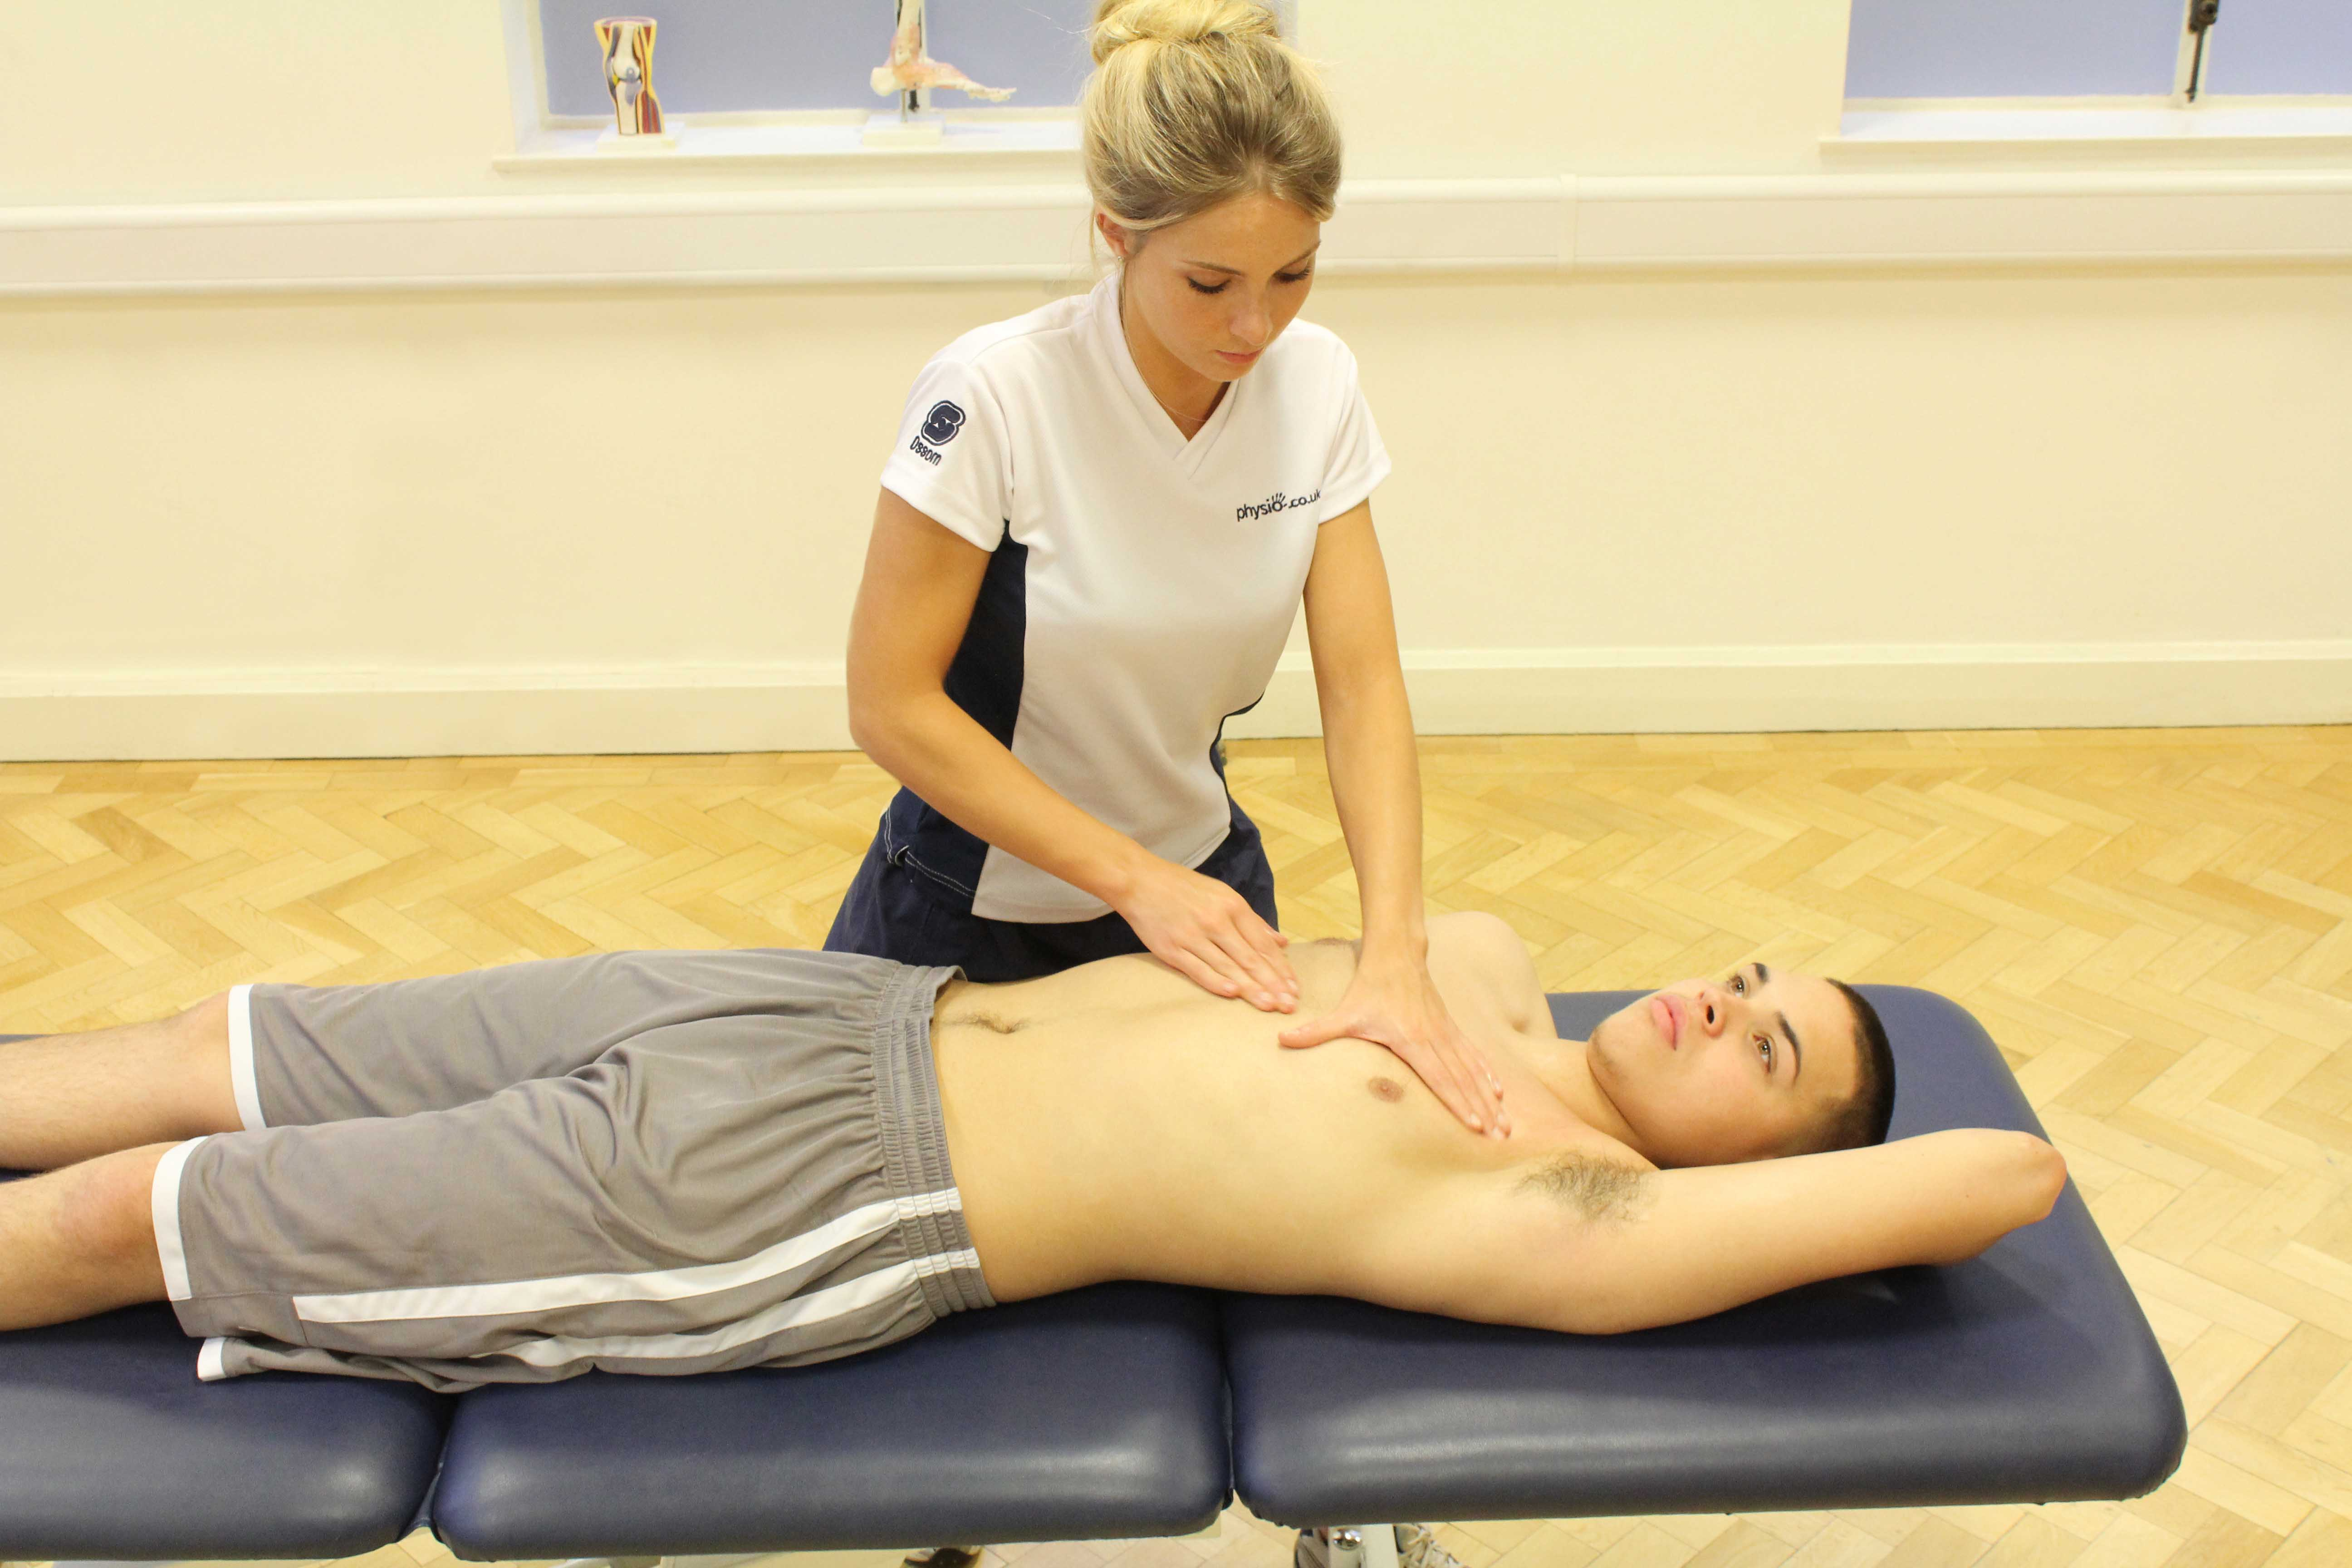 Soft tissue massage of pectoralis major muscle